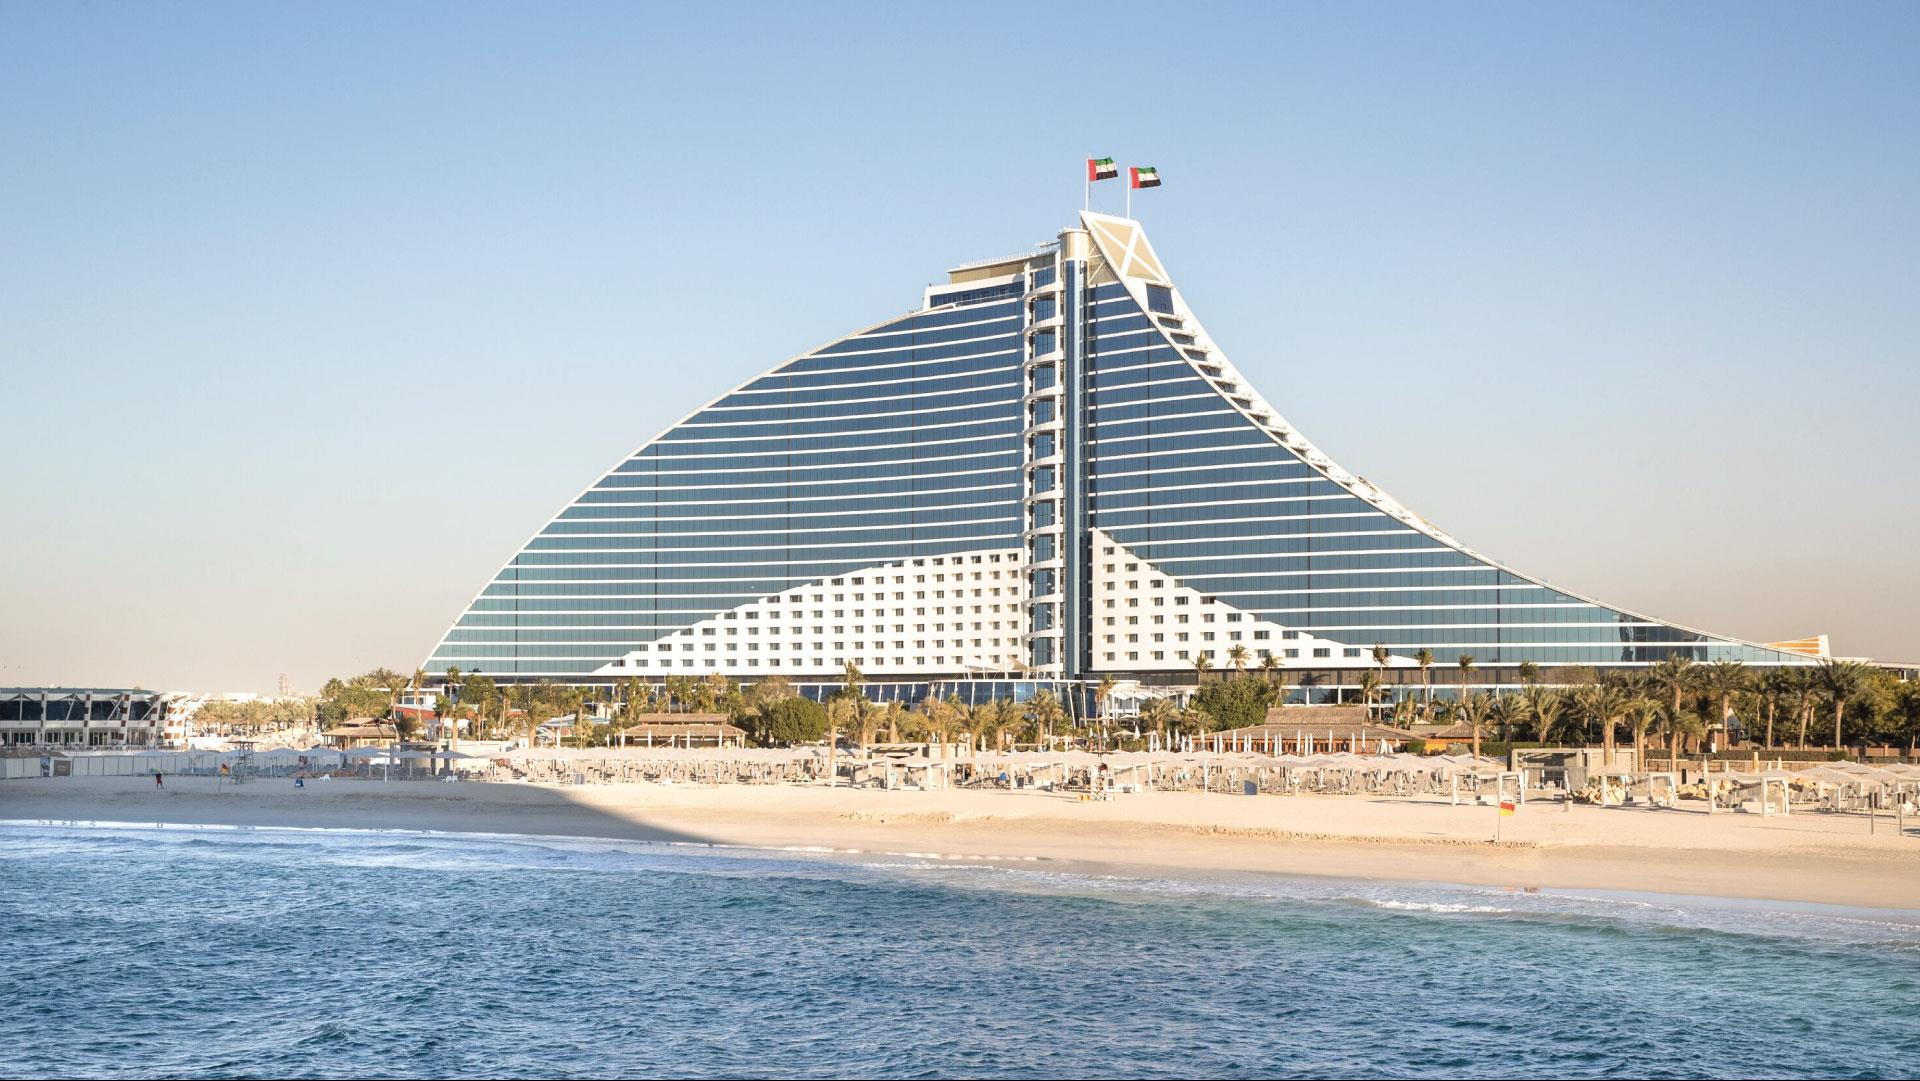 Venues promotions city guides for Dubai hotel ranking